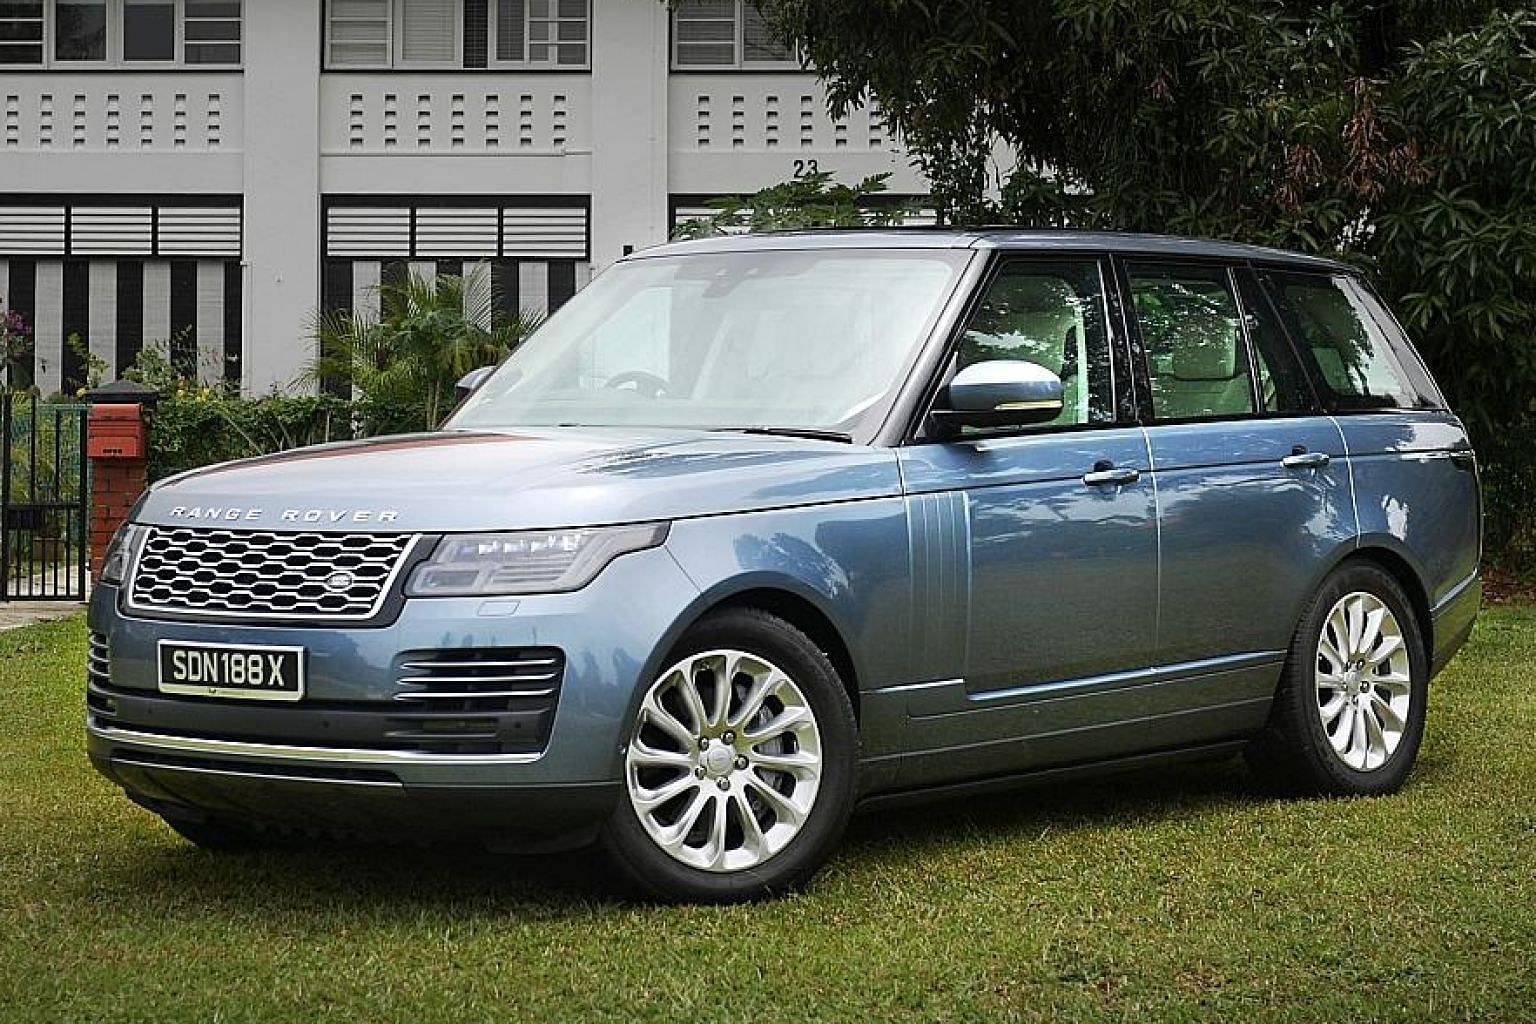 The Range Rover Vogue 3.0 V6 is one of the biggest and tallest sport utility vehicles available here.